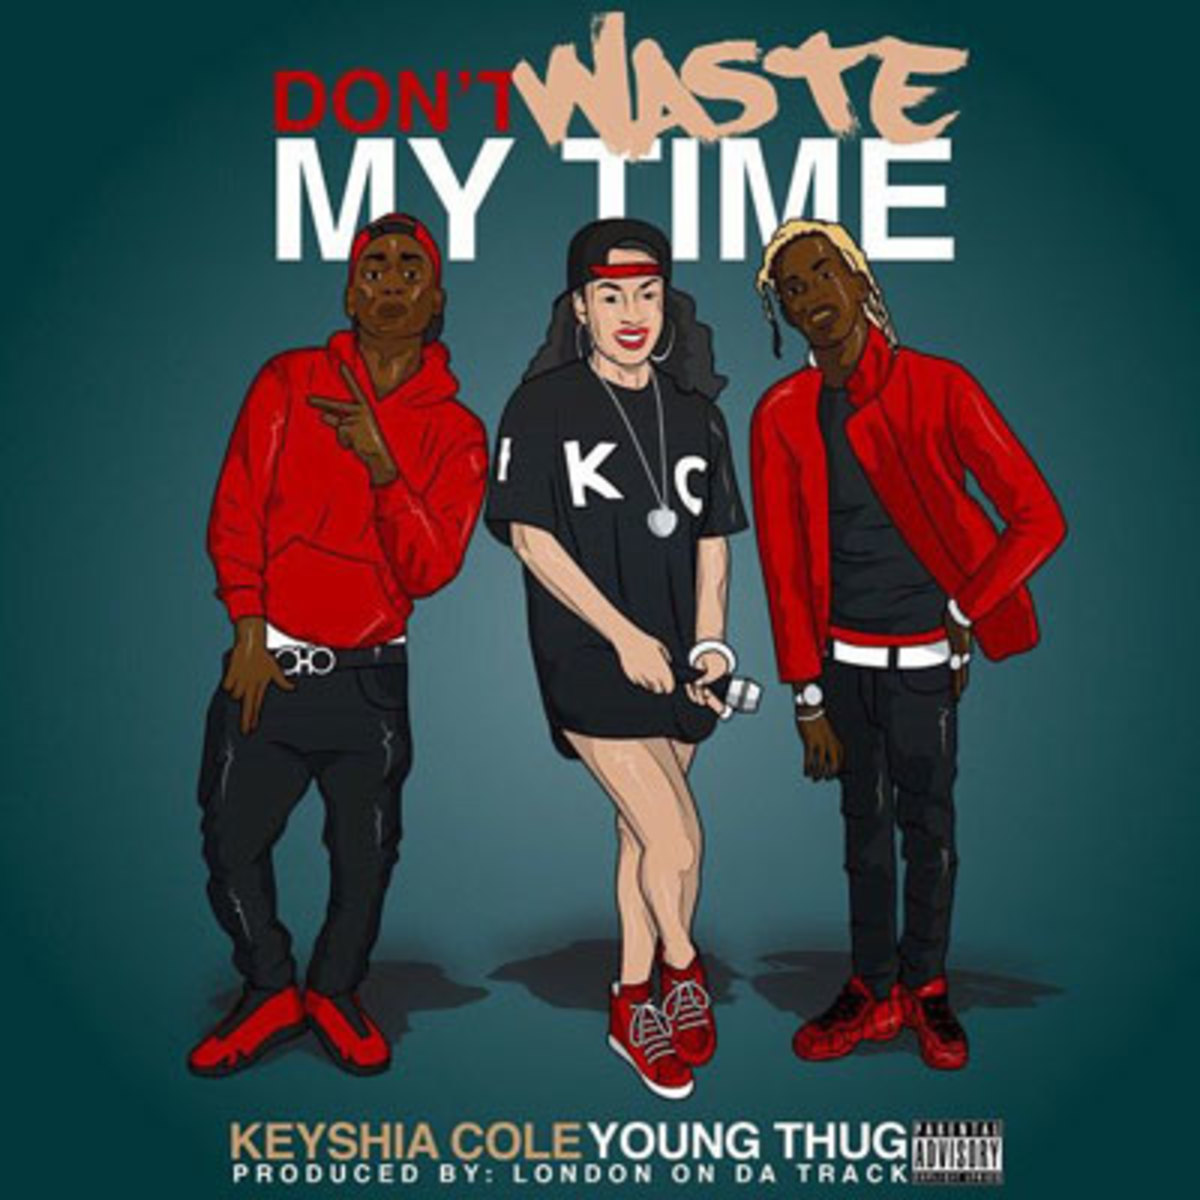 keyshia-cole-dont-waste-my-time.jpg